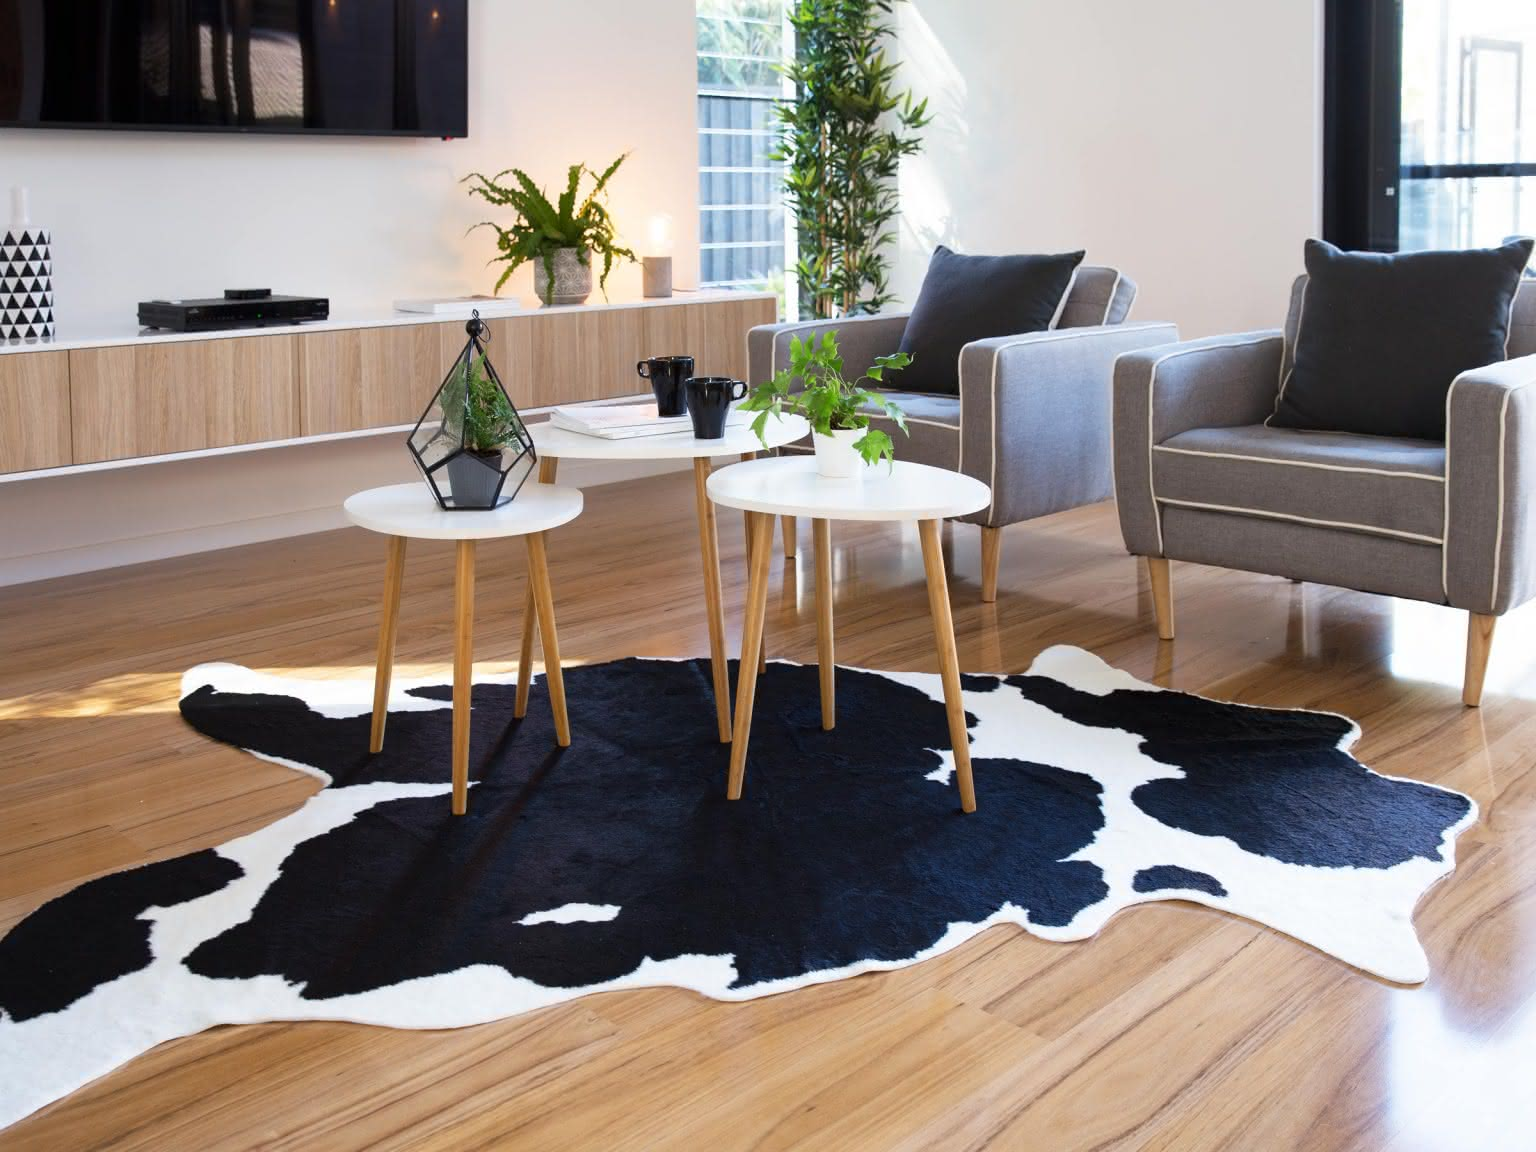 HOW TO PICK A GOOD COW SKIN RUG